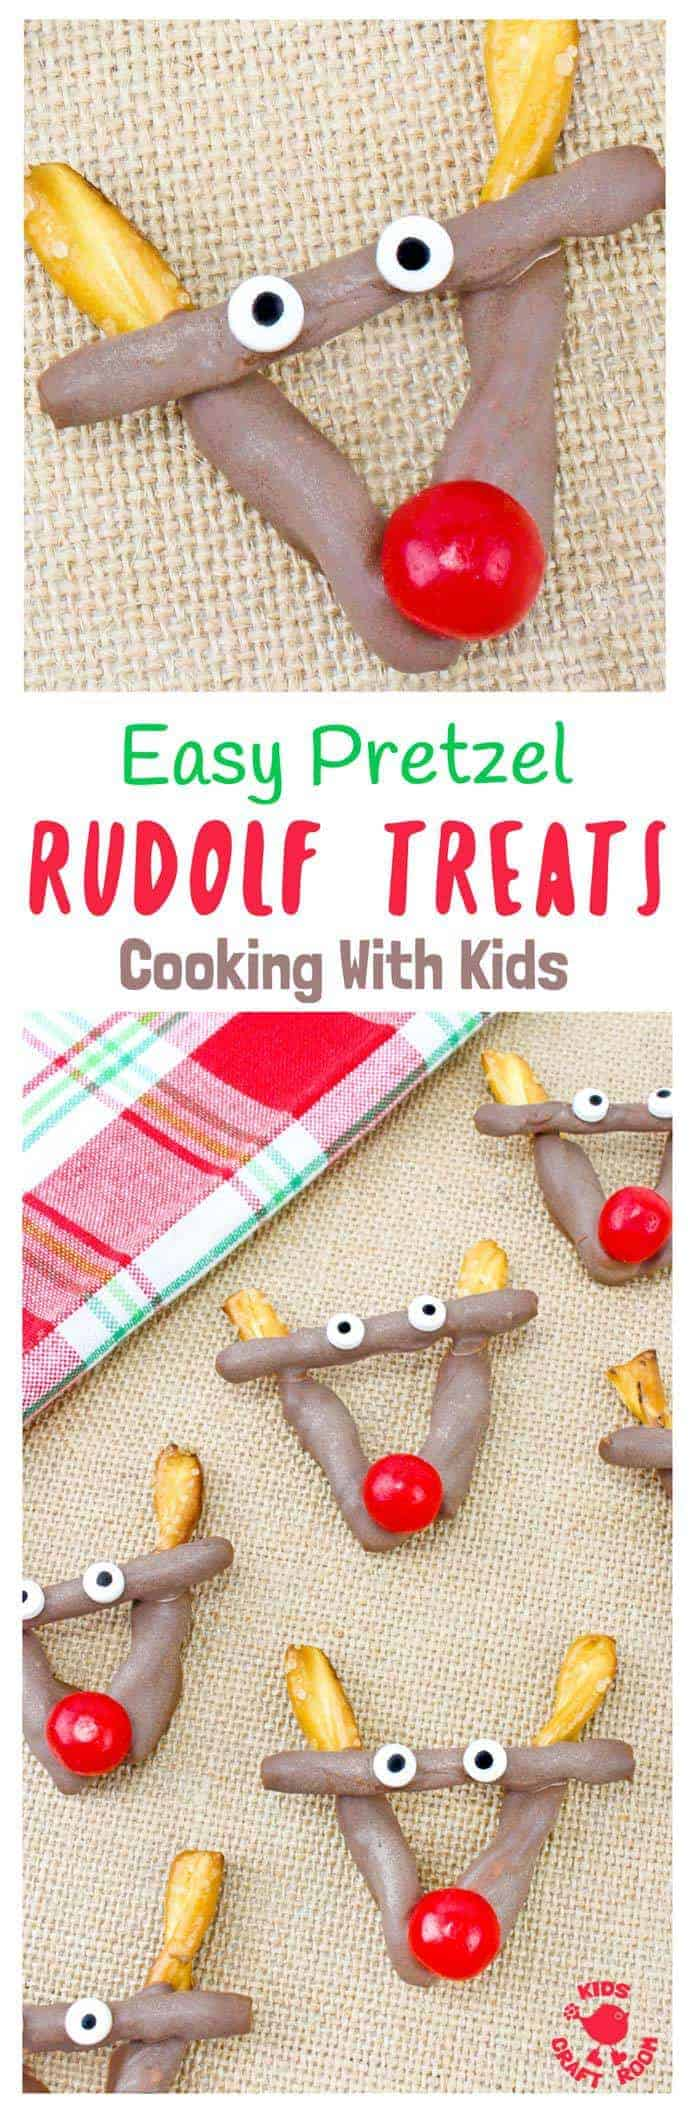 EASY PRETZEL REINDEER TREATS - Simple chocolate pretzel christmas treats melt hearts and tickle taste buds every time!  A festive Christmas recipe for cooking with kids. Great for Christmas parties and bake sales, play dates or to share with classmates and teachers for an end of term festive treat. Who can resist the charms of Rudolf The Red Nosed Reindeer? I know we can't!